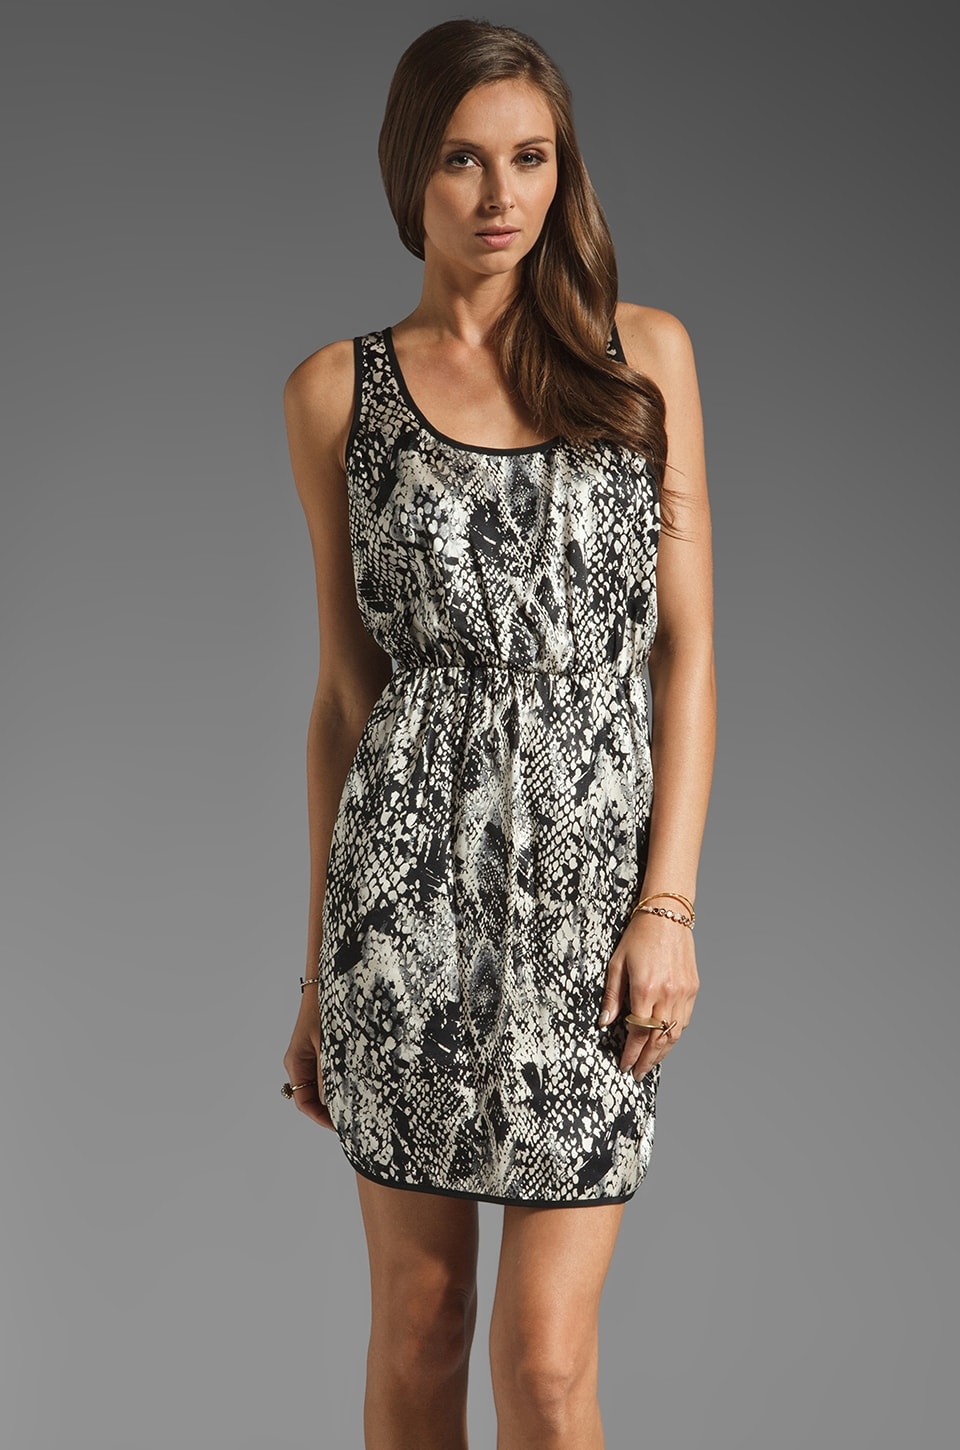 Amanda Uprichard St. Louis Racer Tank Dress in Snake/Black Bias